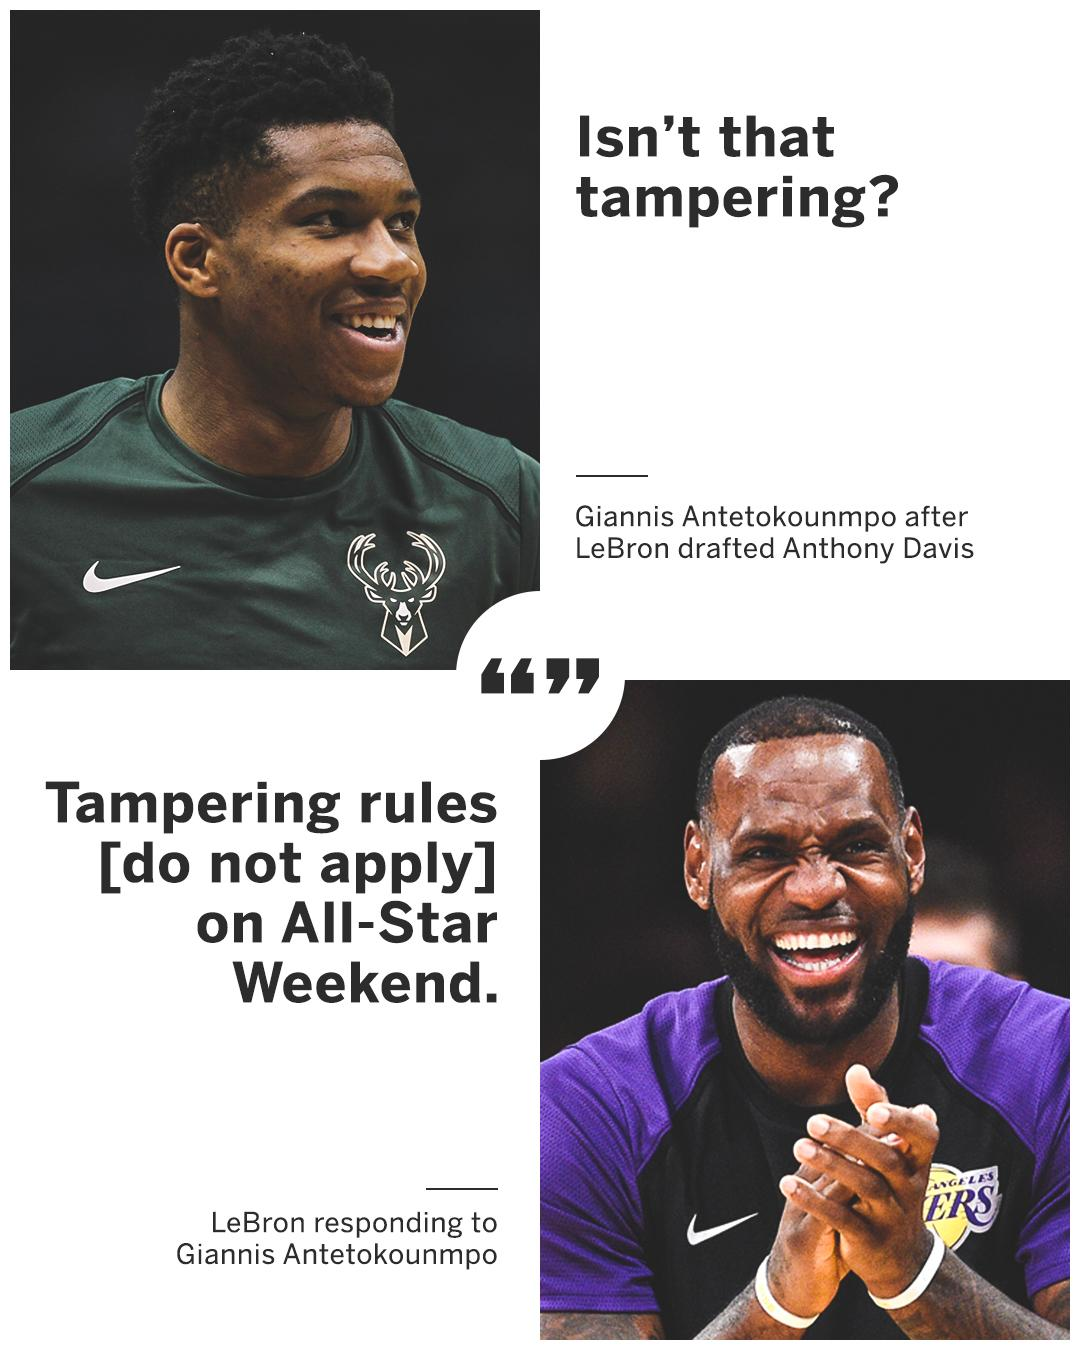 """LeBron said he was """"very sure"""" he wanted Anthony Davis on his team, and Giannis had to question that �� https://t.co/emN3BiCfIB"""